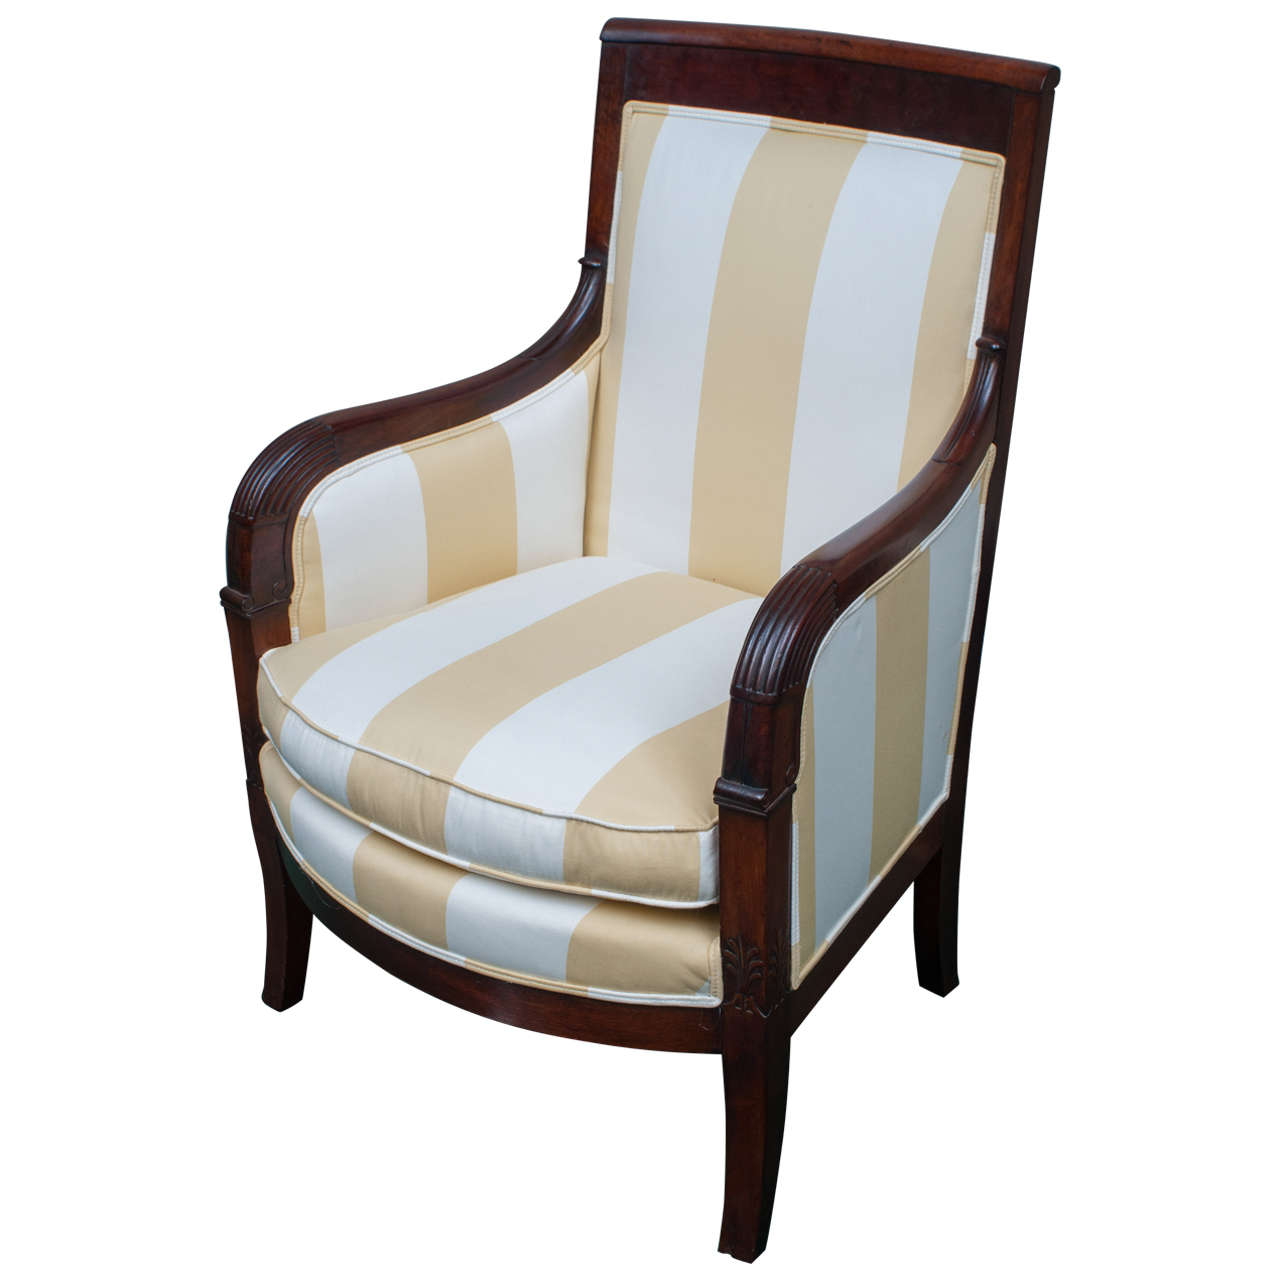 bergere chairs folding chair vancouver restoration for sale at 1stdibs